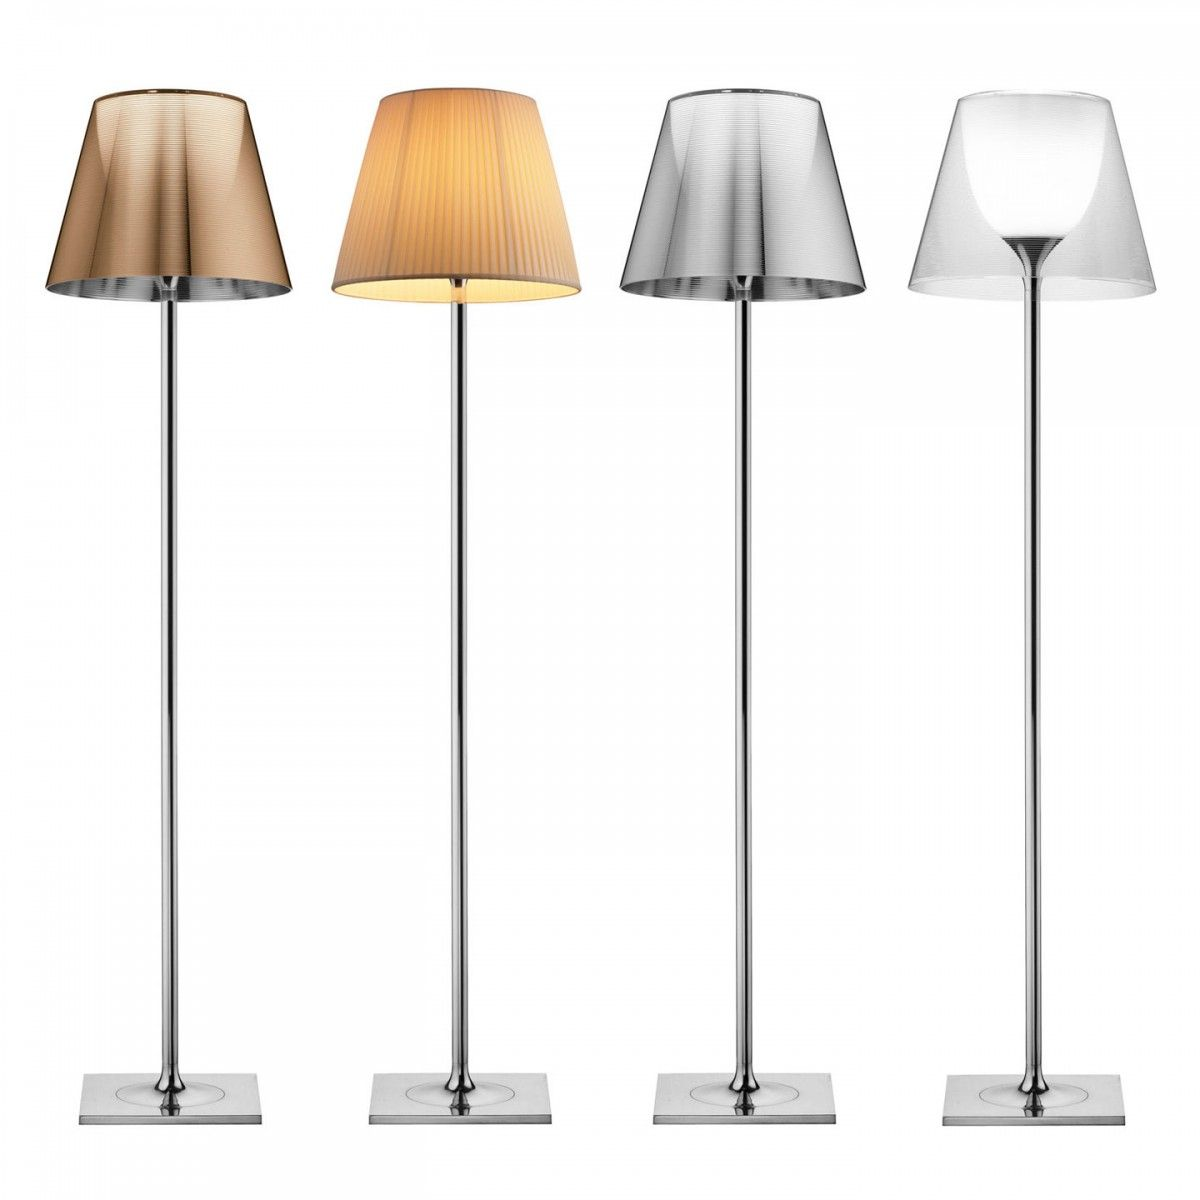 flos lighting nyc. Flos Lighting Nyc. Ktribe F2 Floor Lamp By Philippe Starck For Nyc L